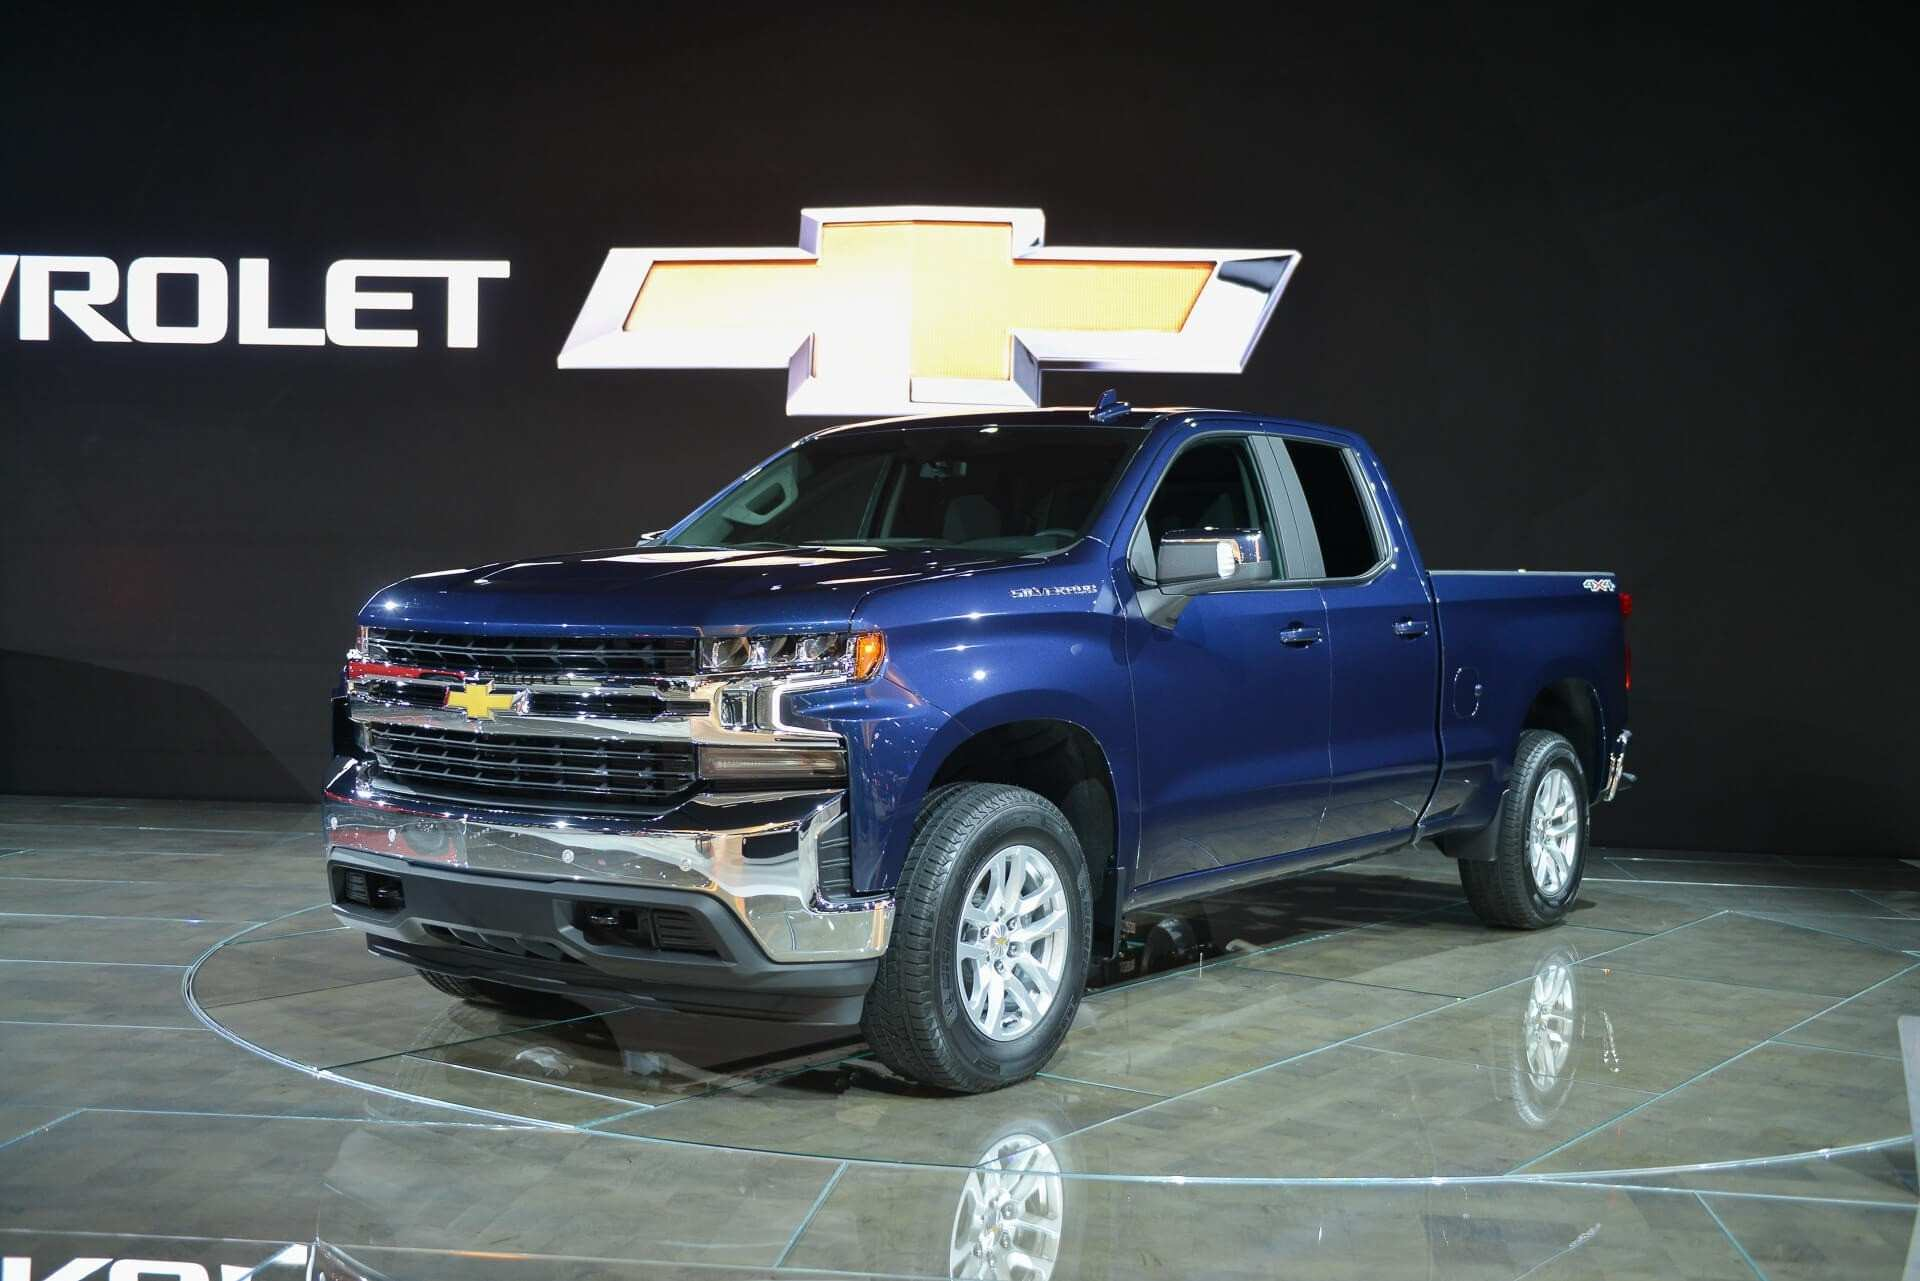 97 A 2020 Chevy K5 Blazer Price And Release Date